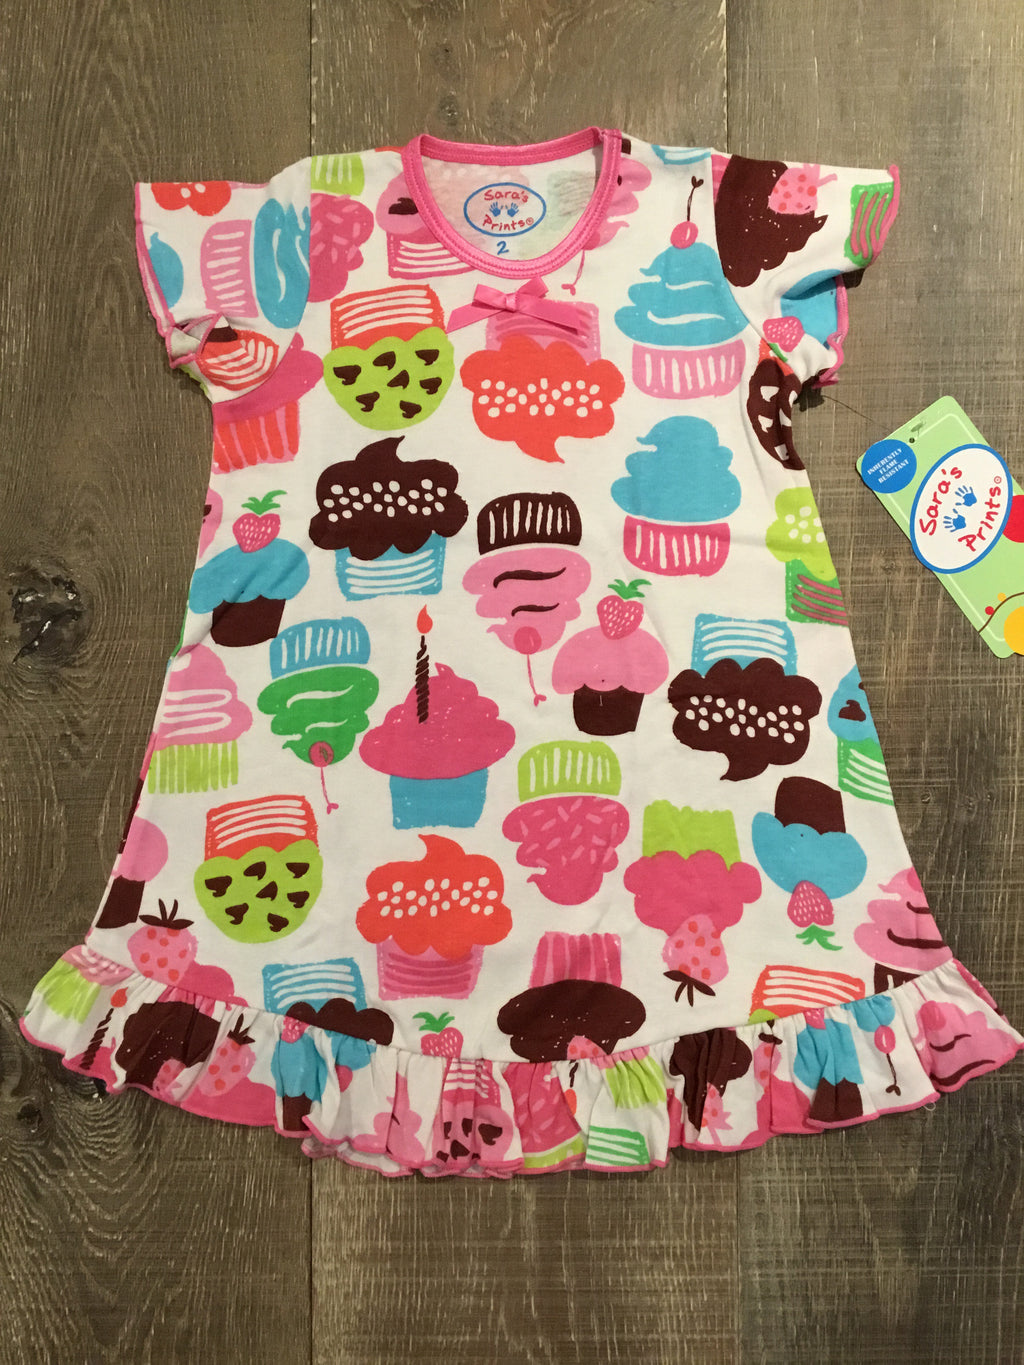 Cupcakes Ruffle Short Sleeve Night gown